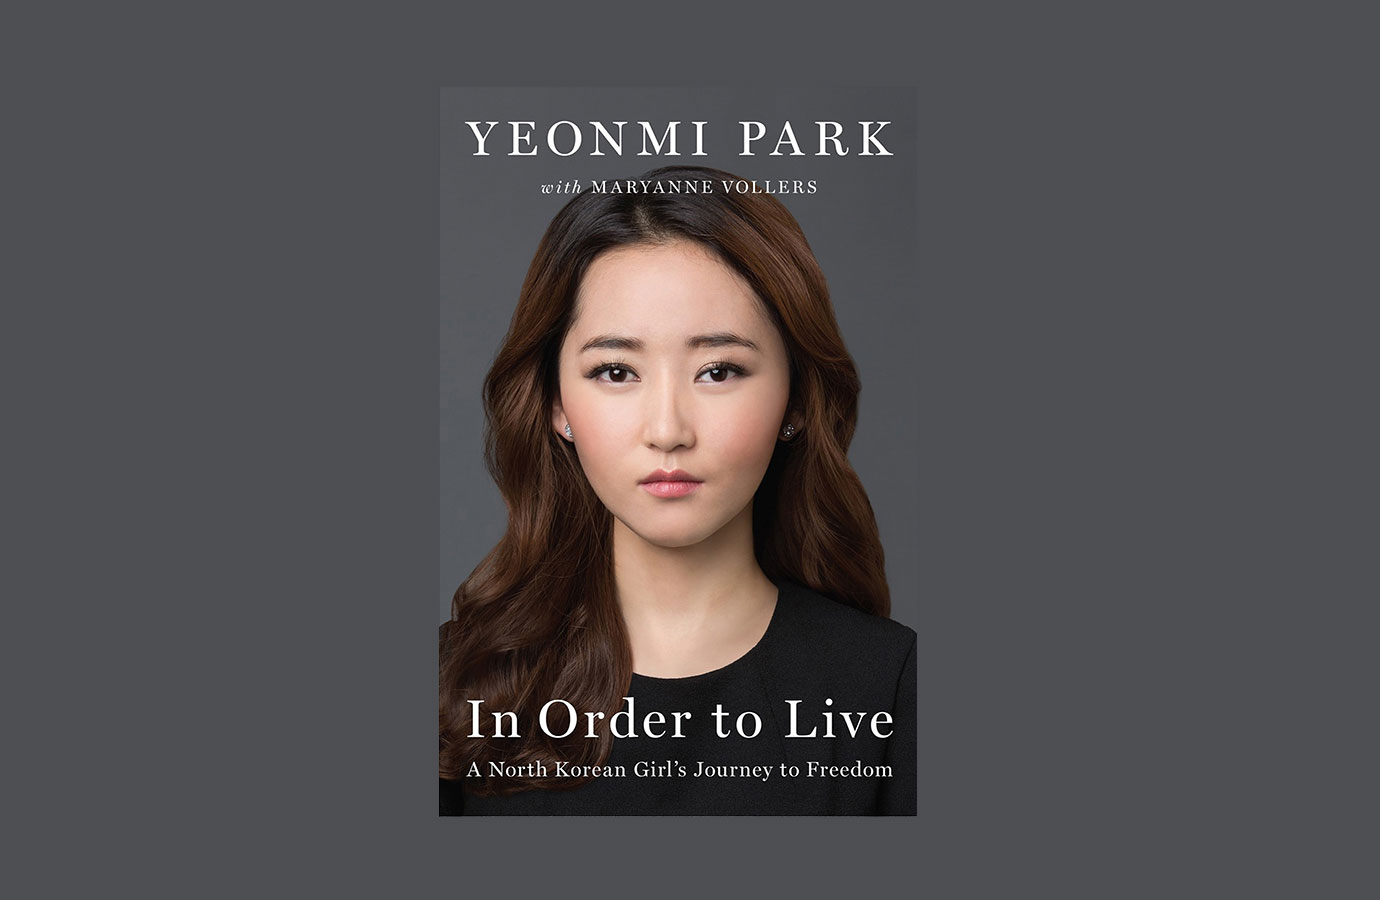 yeonmi park in order to live book